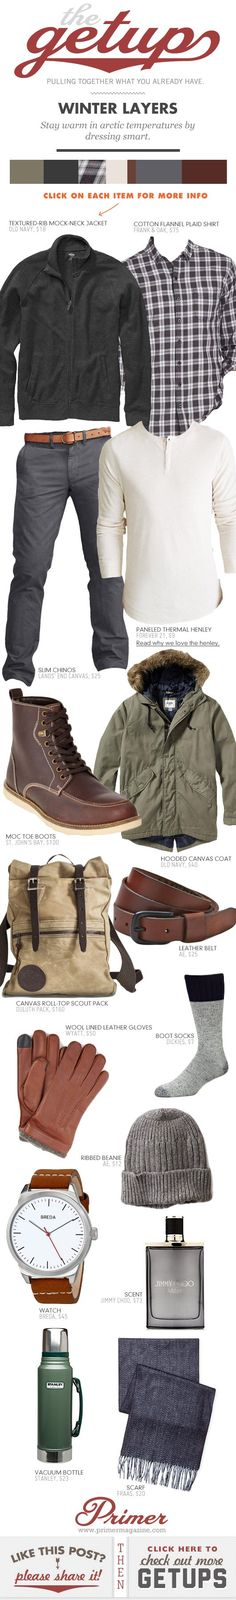 Stay warm in arctic temperatures by dressing smart.